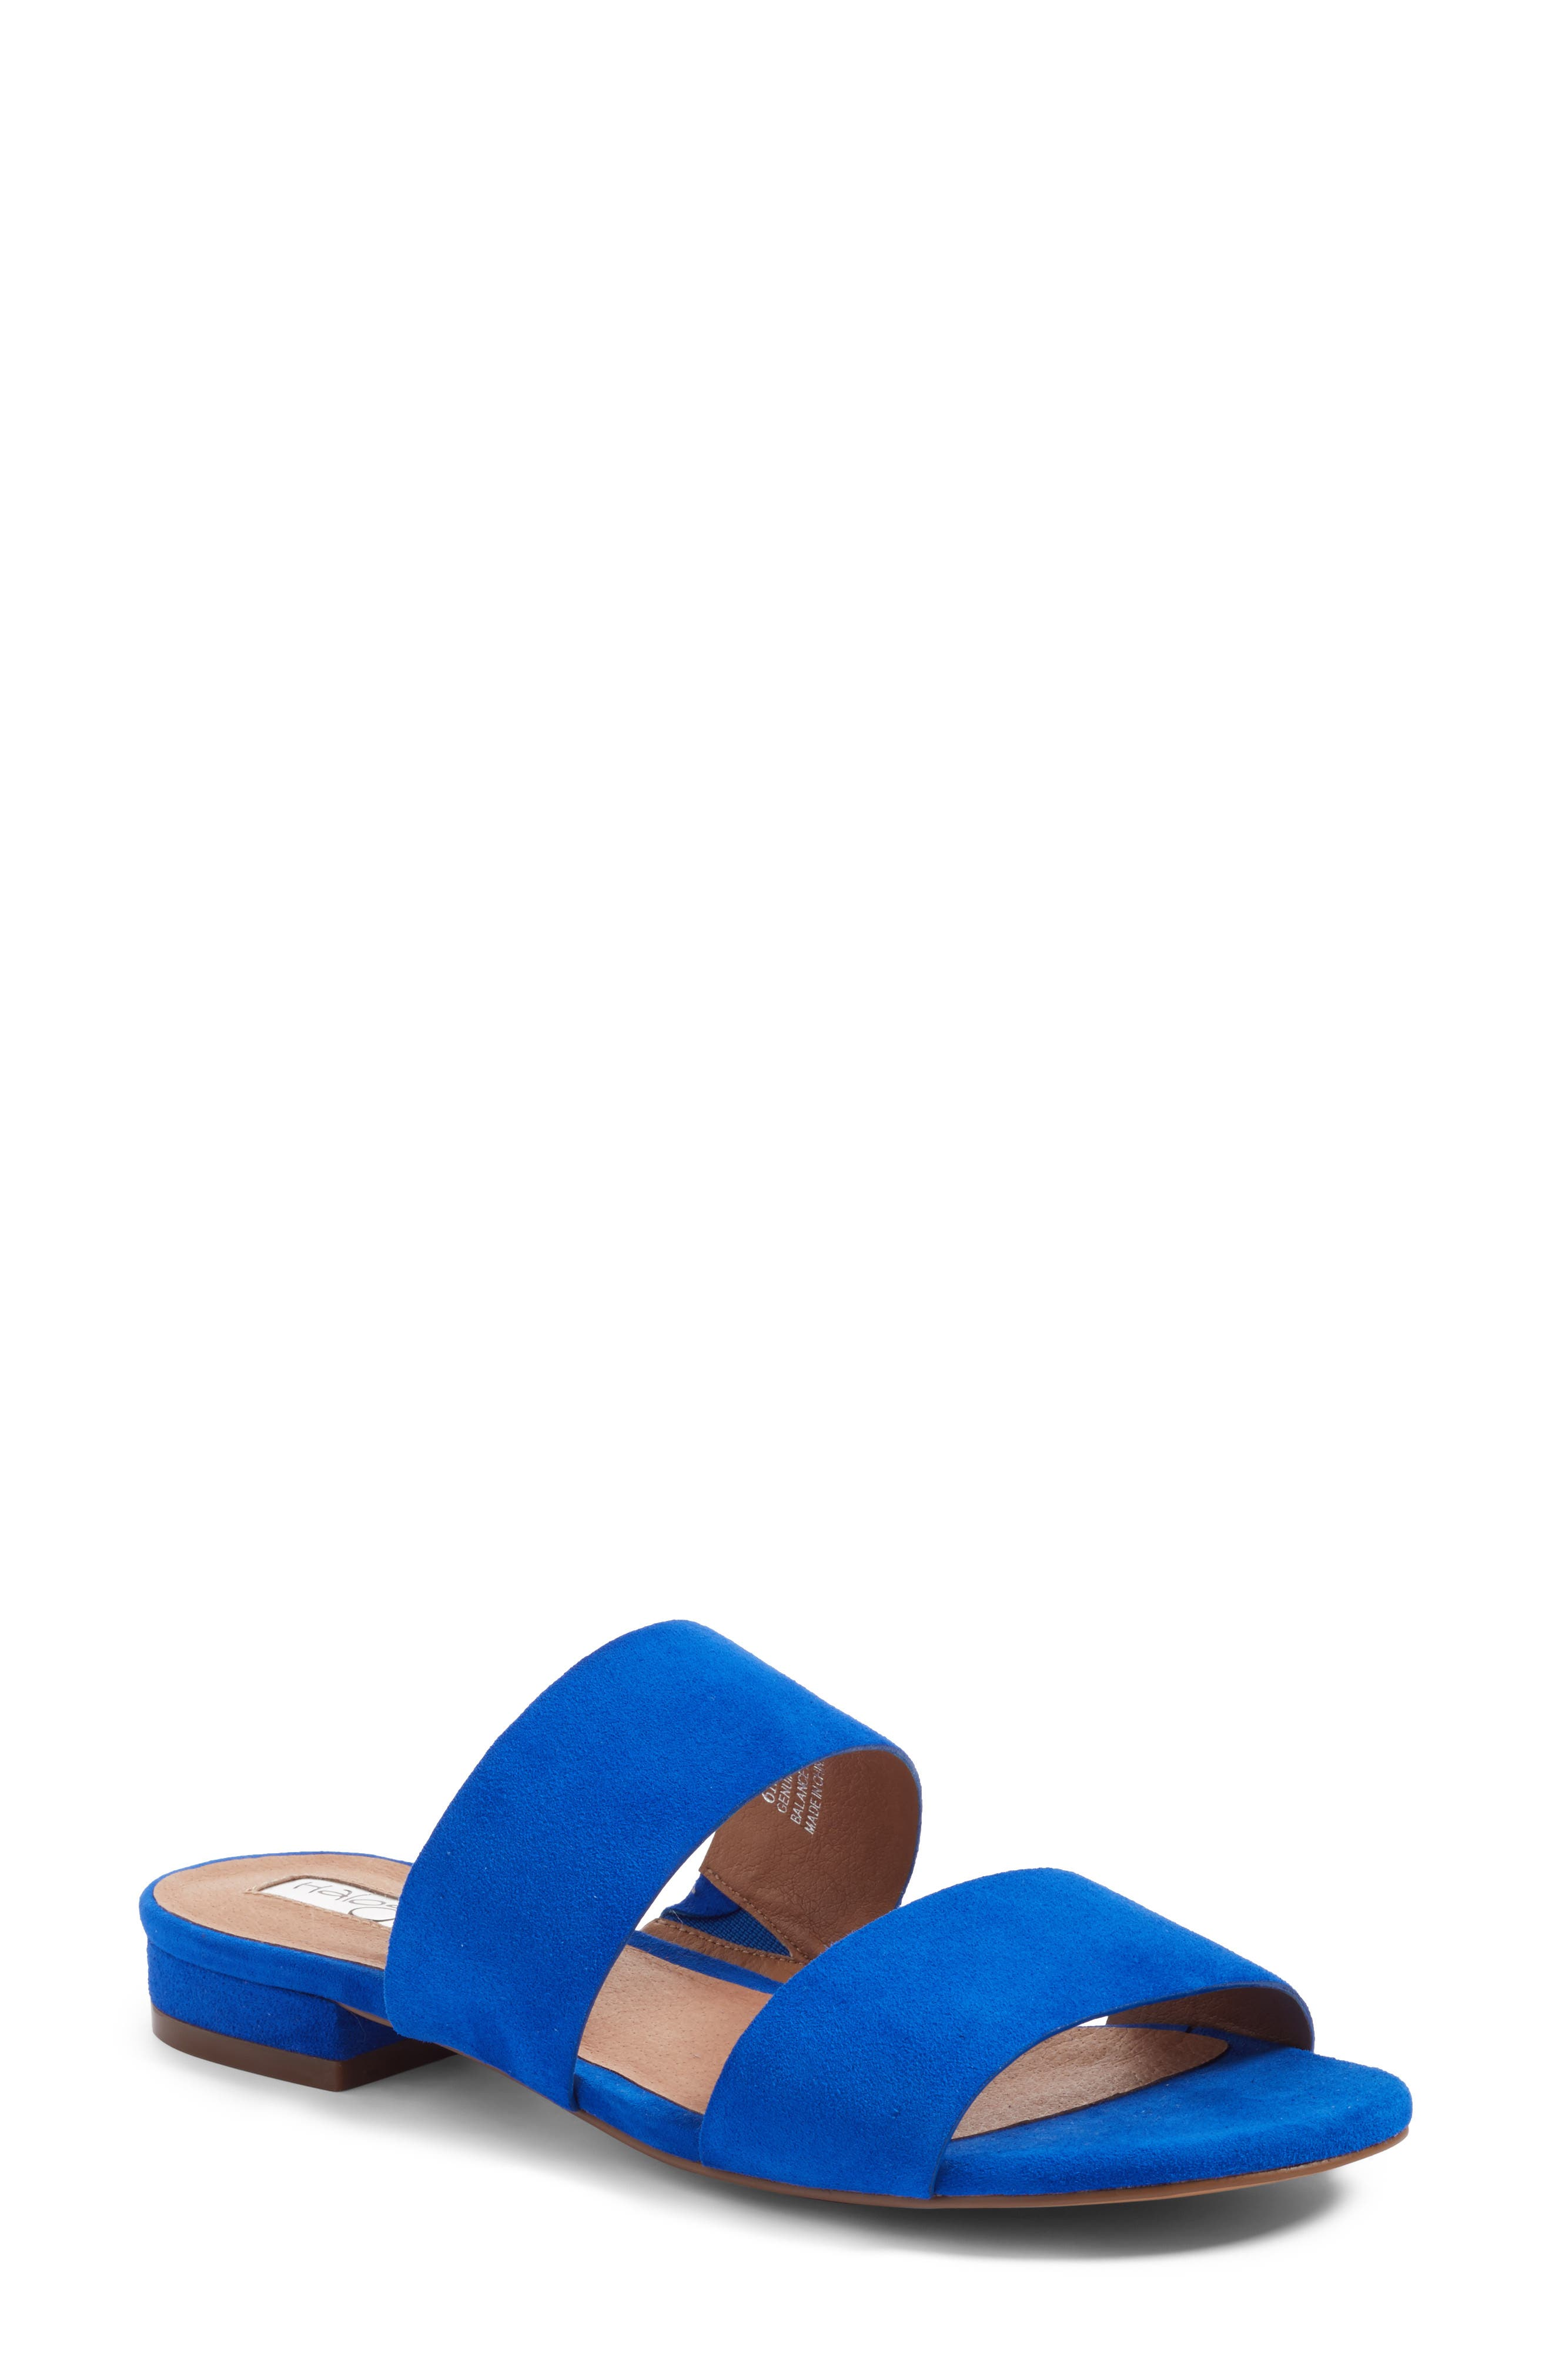 Alternate Image 1 Selected - Halogen® Adina Sandal (Women)